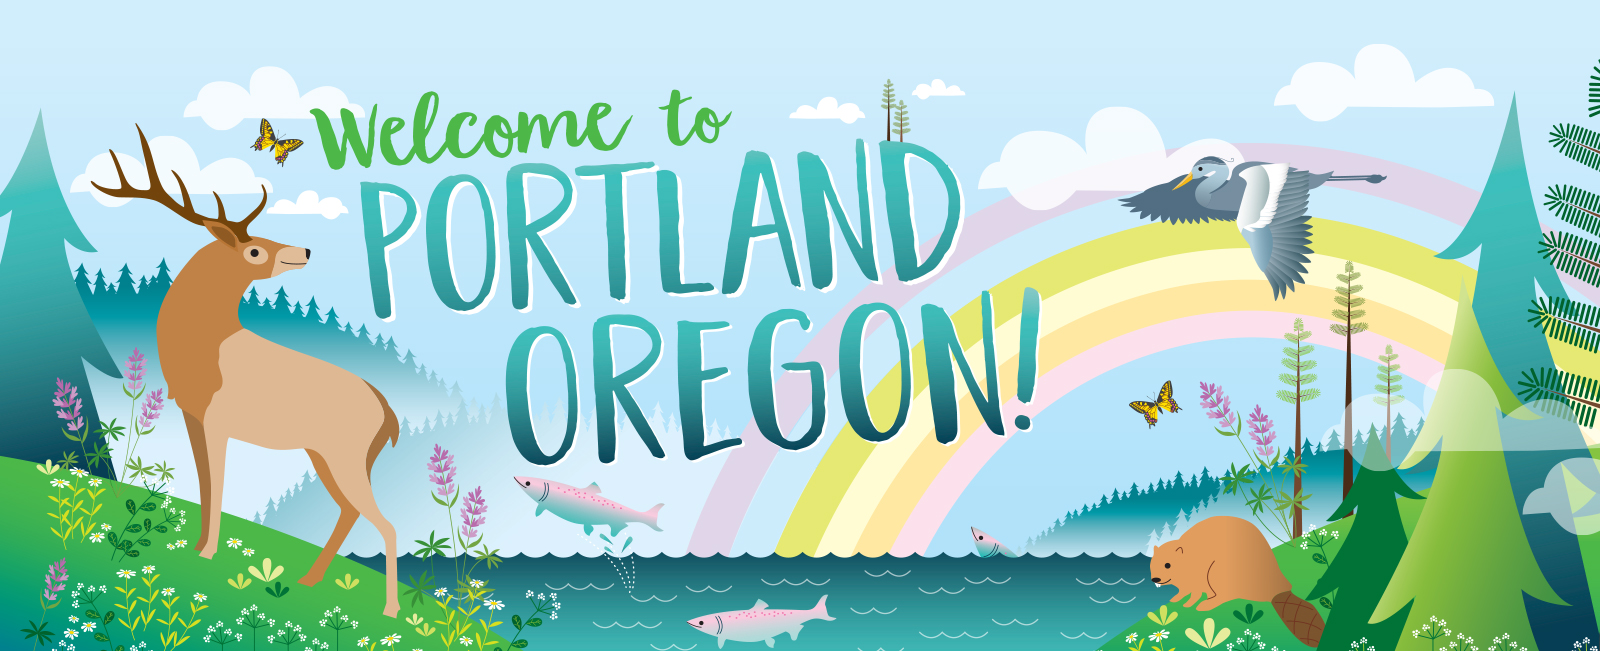 WELCOME TO PORTLAND OREGON, AMY RUPPEL, SOUTH PASSENGER ARRIVALS